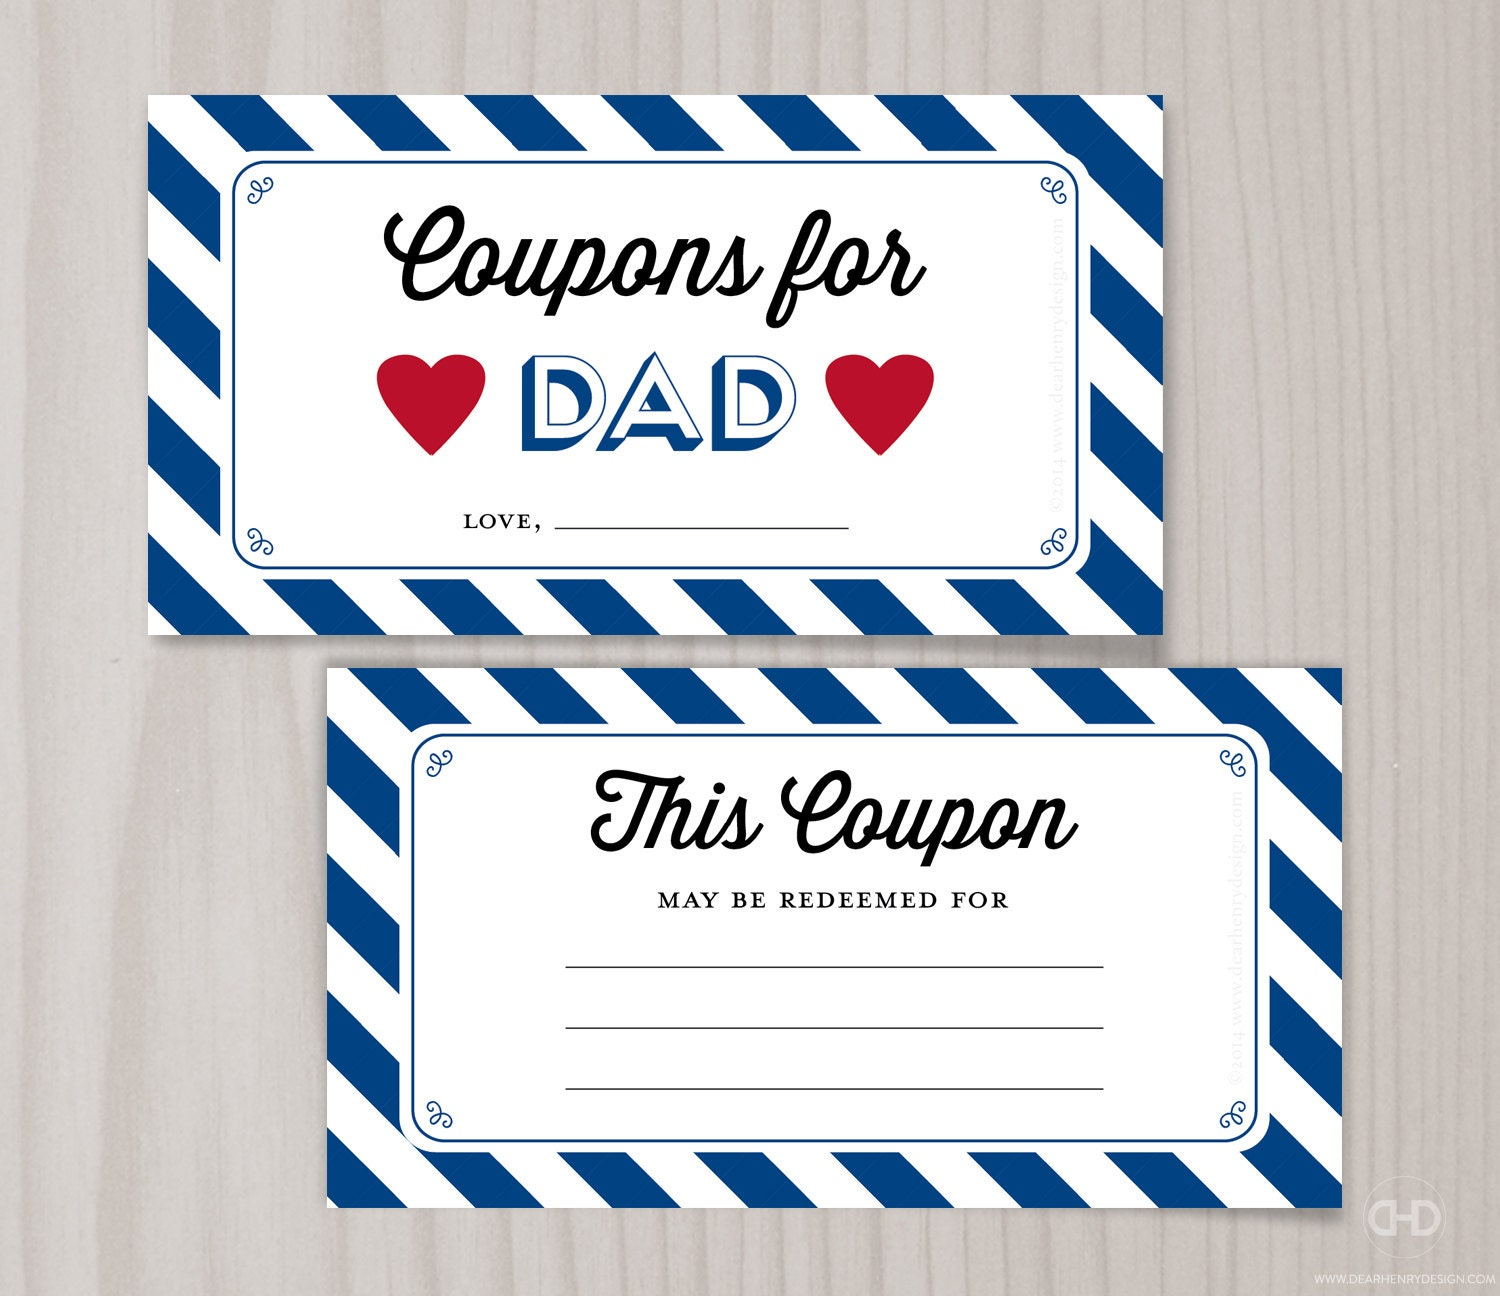 Christmas Coupons for Dad Blank Printable Coupons Blank